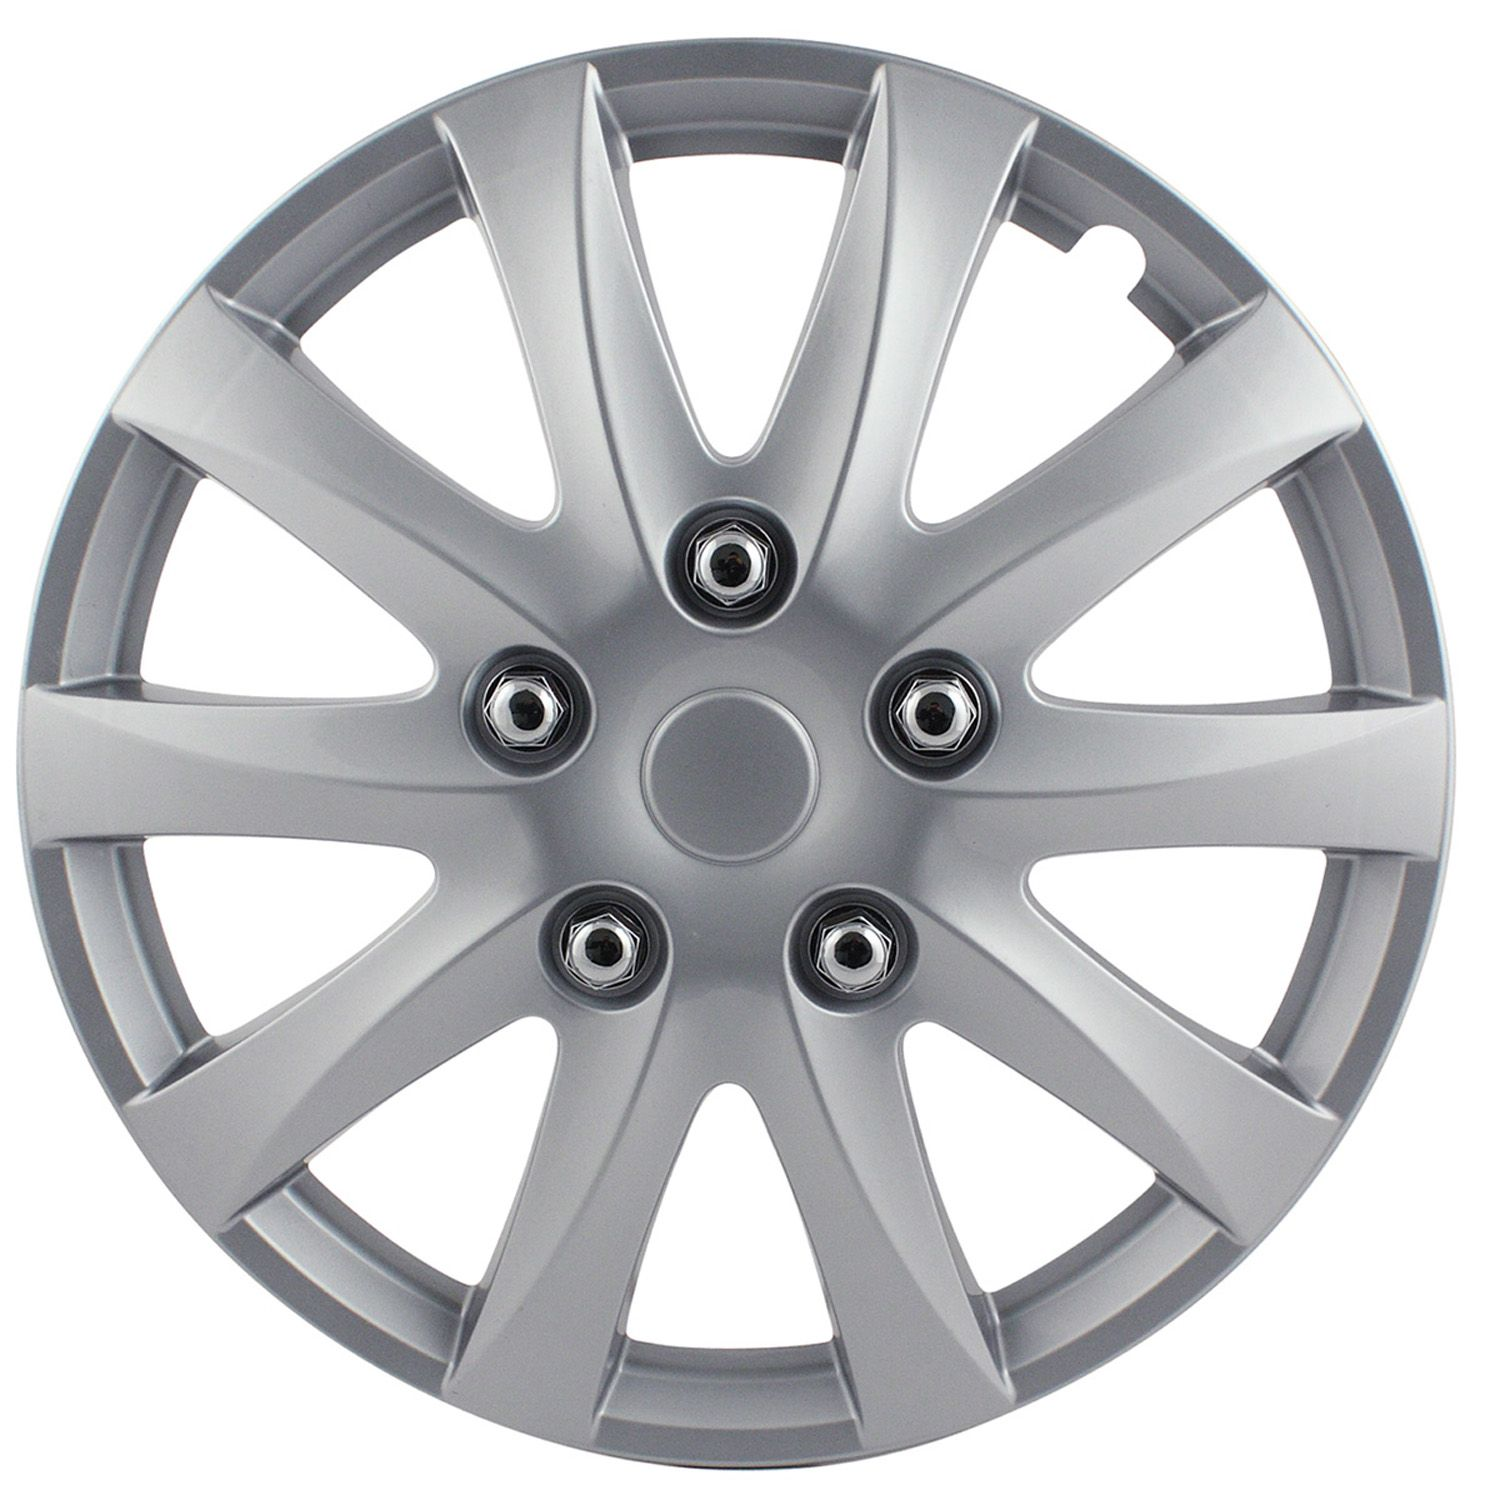 "Pilot/Bully WH526-15S-BX Wheel Cover 15"" 10 Spokes Silver ABS Plastic Set Of 4"